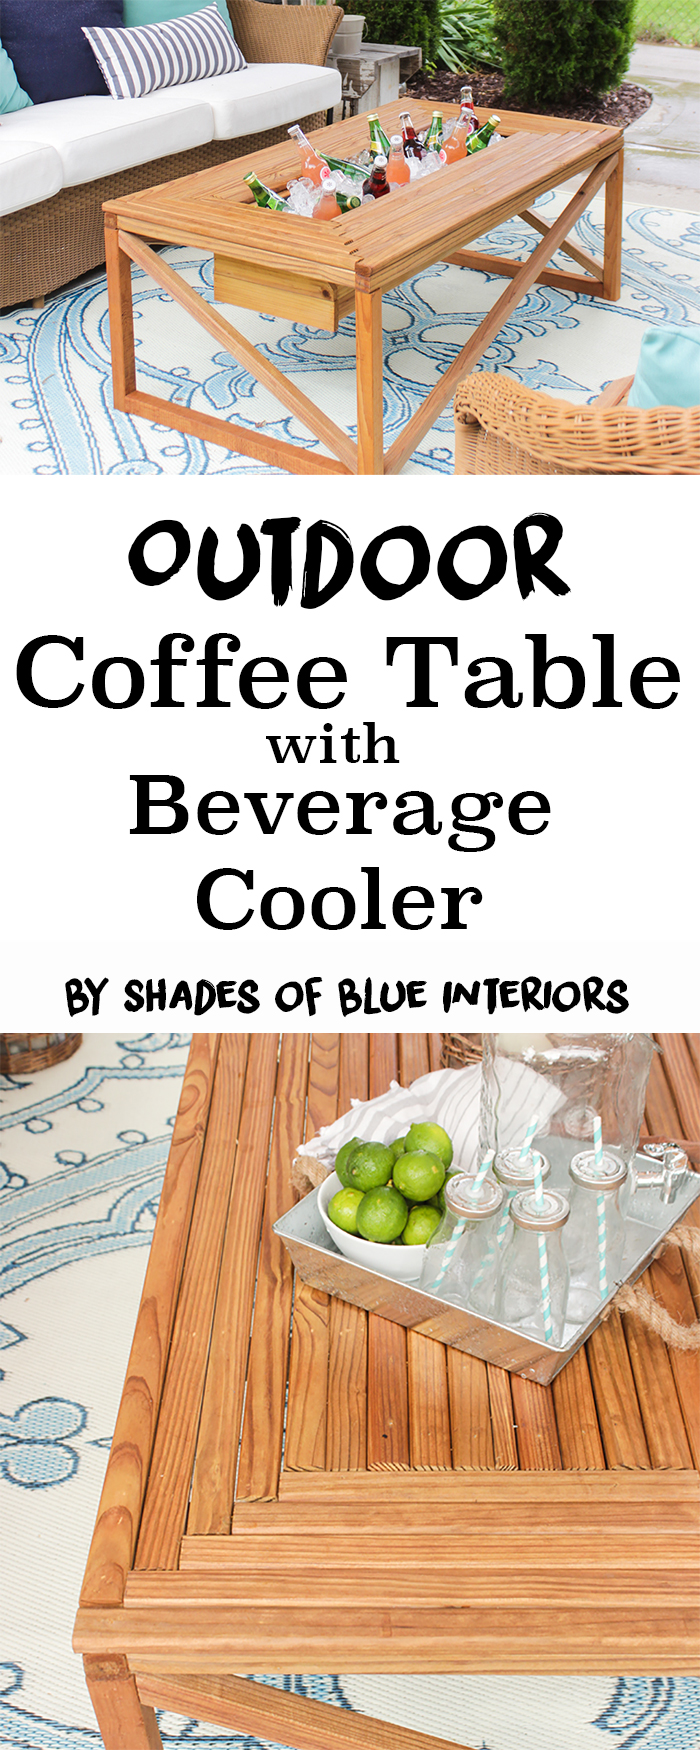 Outdoor-Coffee-Table-with-Beverage-Cooler